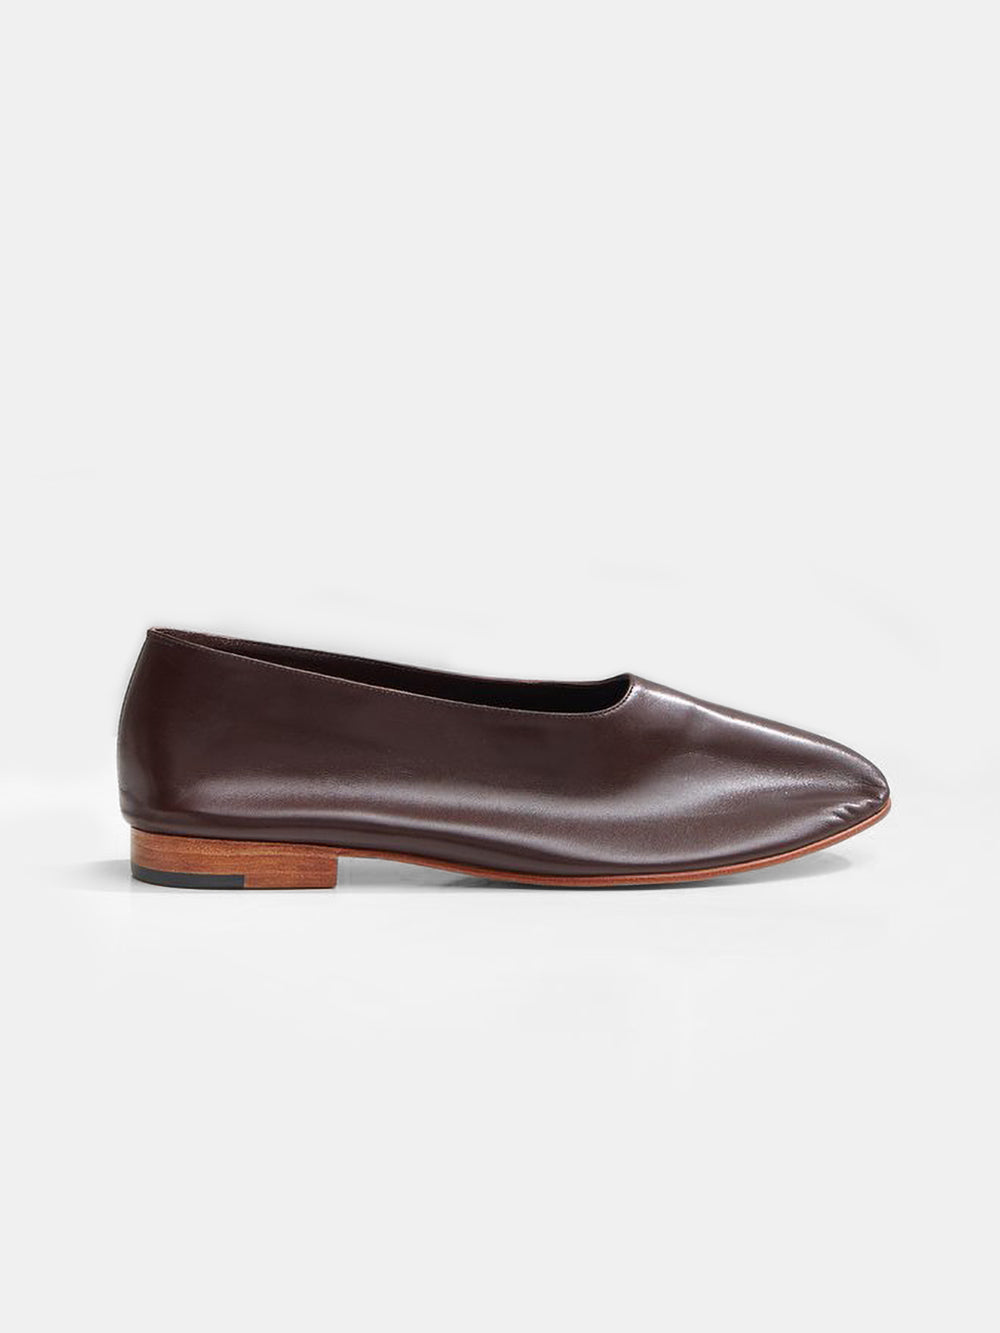 martiniano glove shoe in dark umber